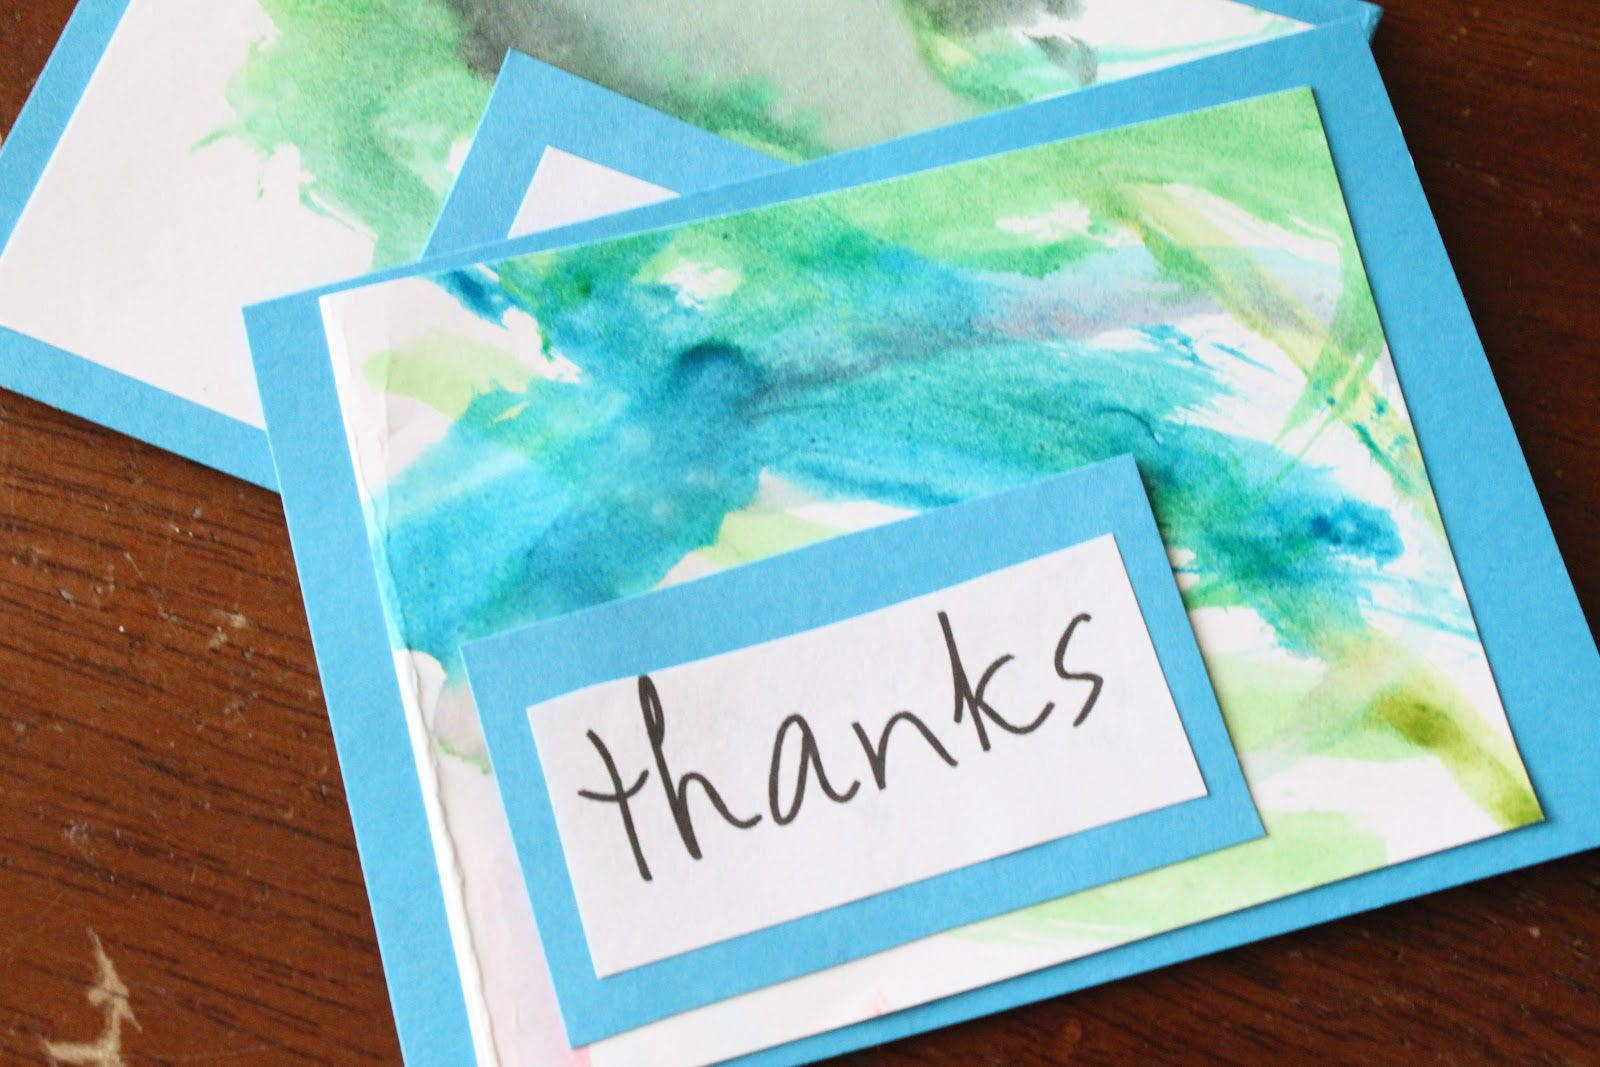 Do it yourself divas diy making a thank you card out of kid art diy making a thank you card out of kid art solutioingenieria